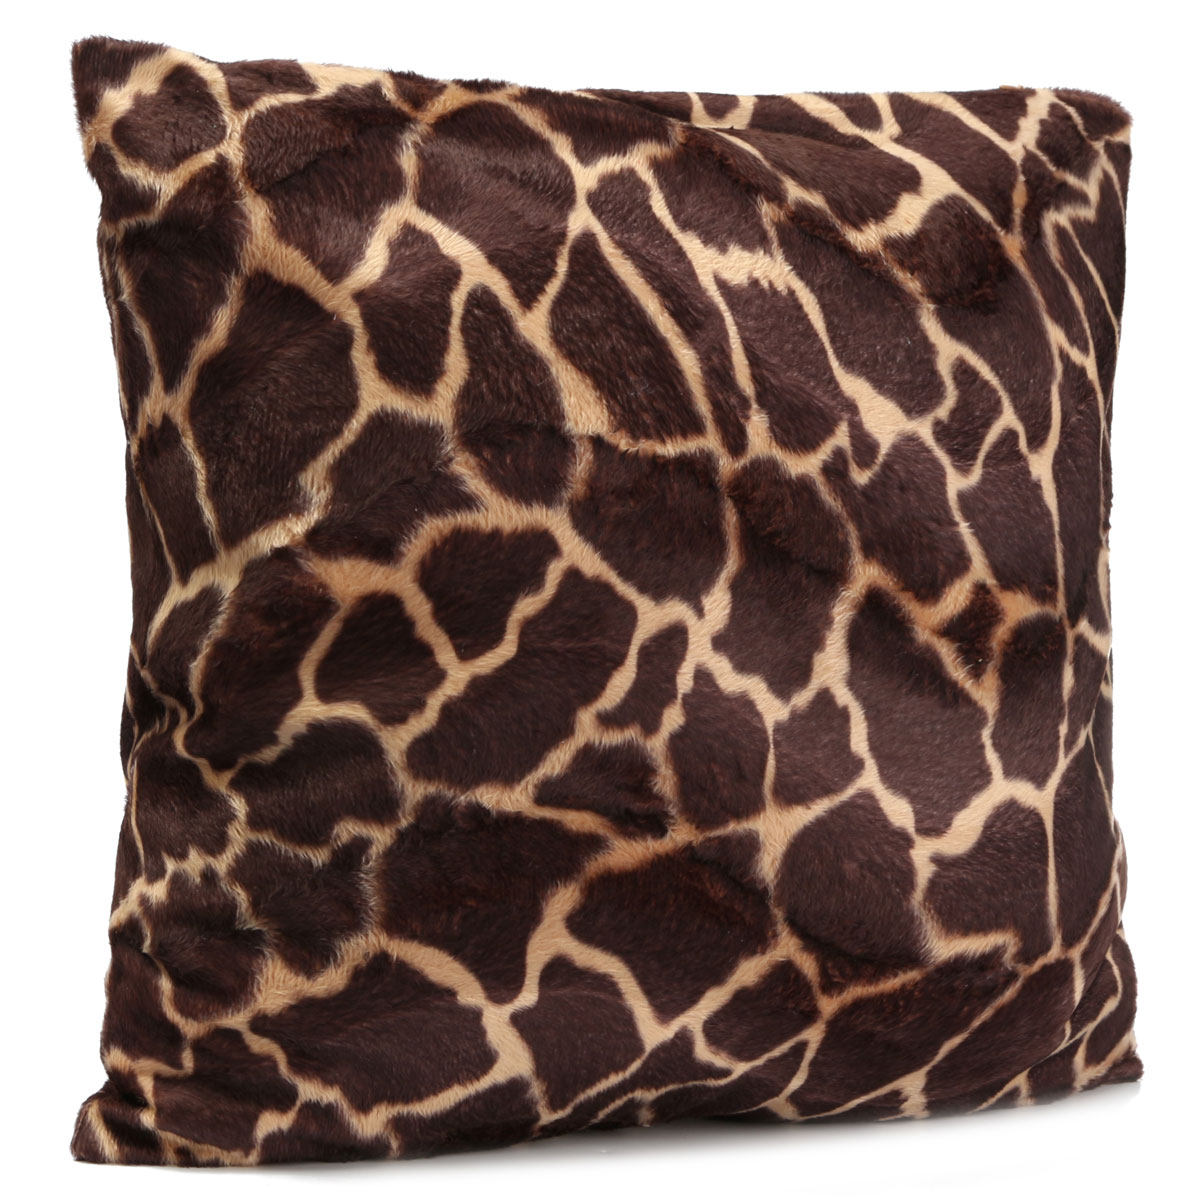 Animal Print Sofa Pillows : Pillows - Leopard Animal Print Pattern Pillow Case Sofa Waist Throw Cushion Cover Home ...